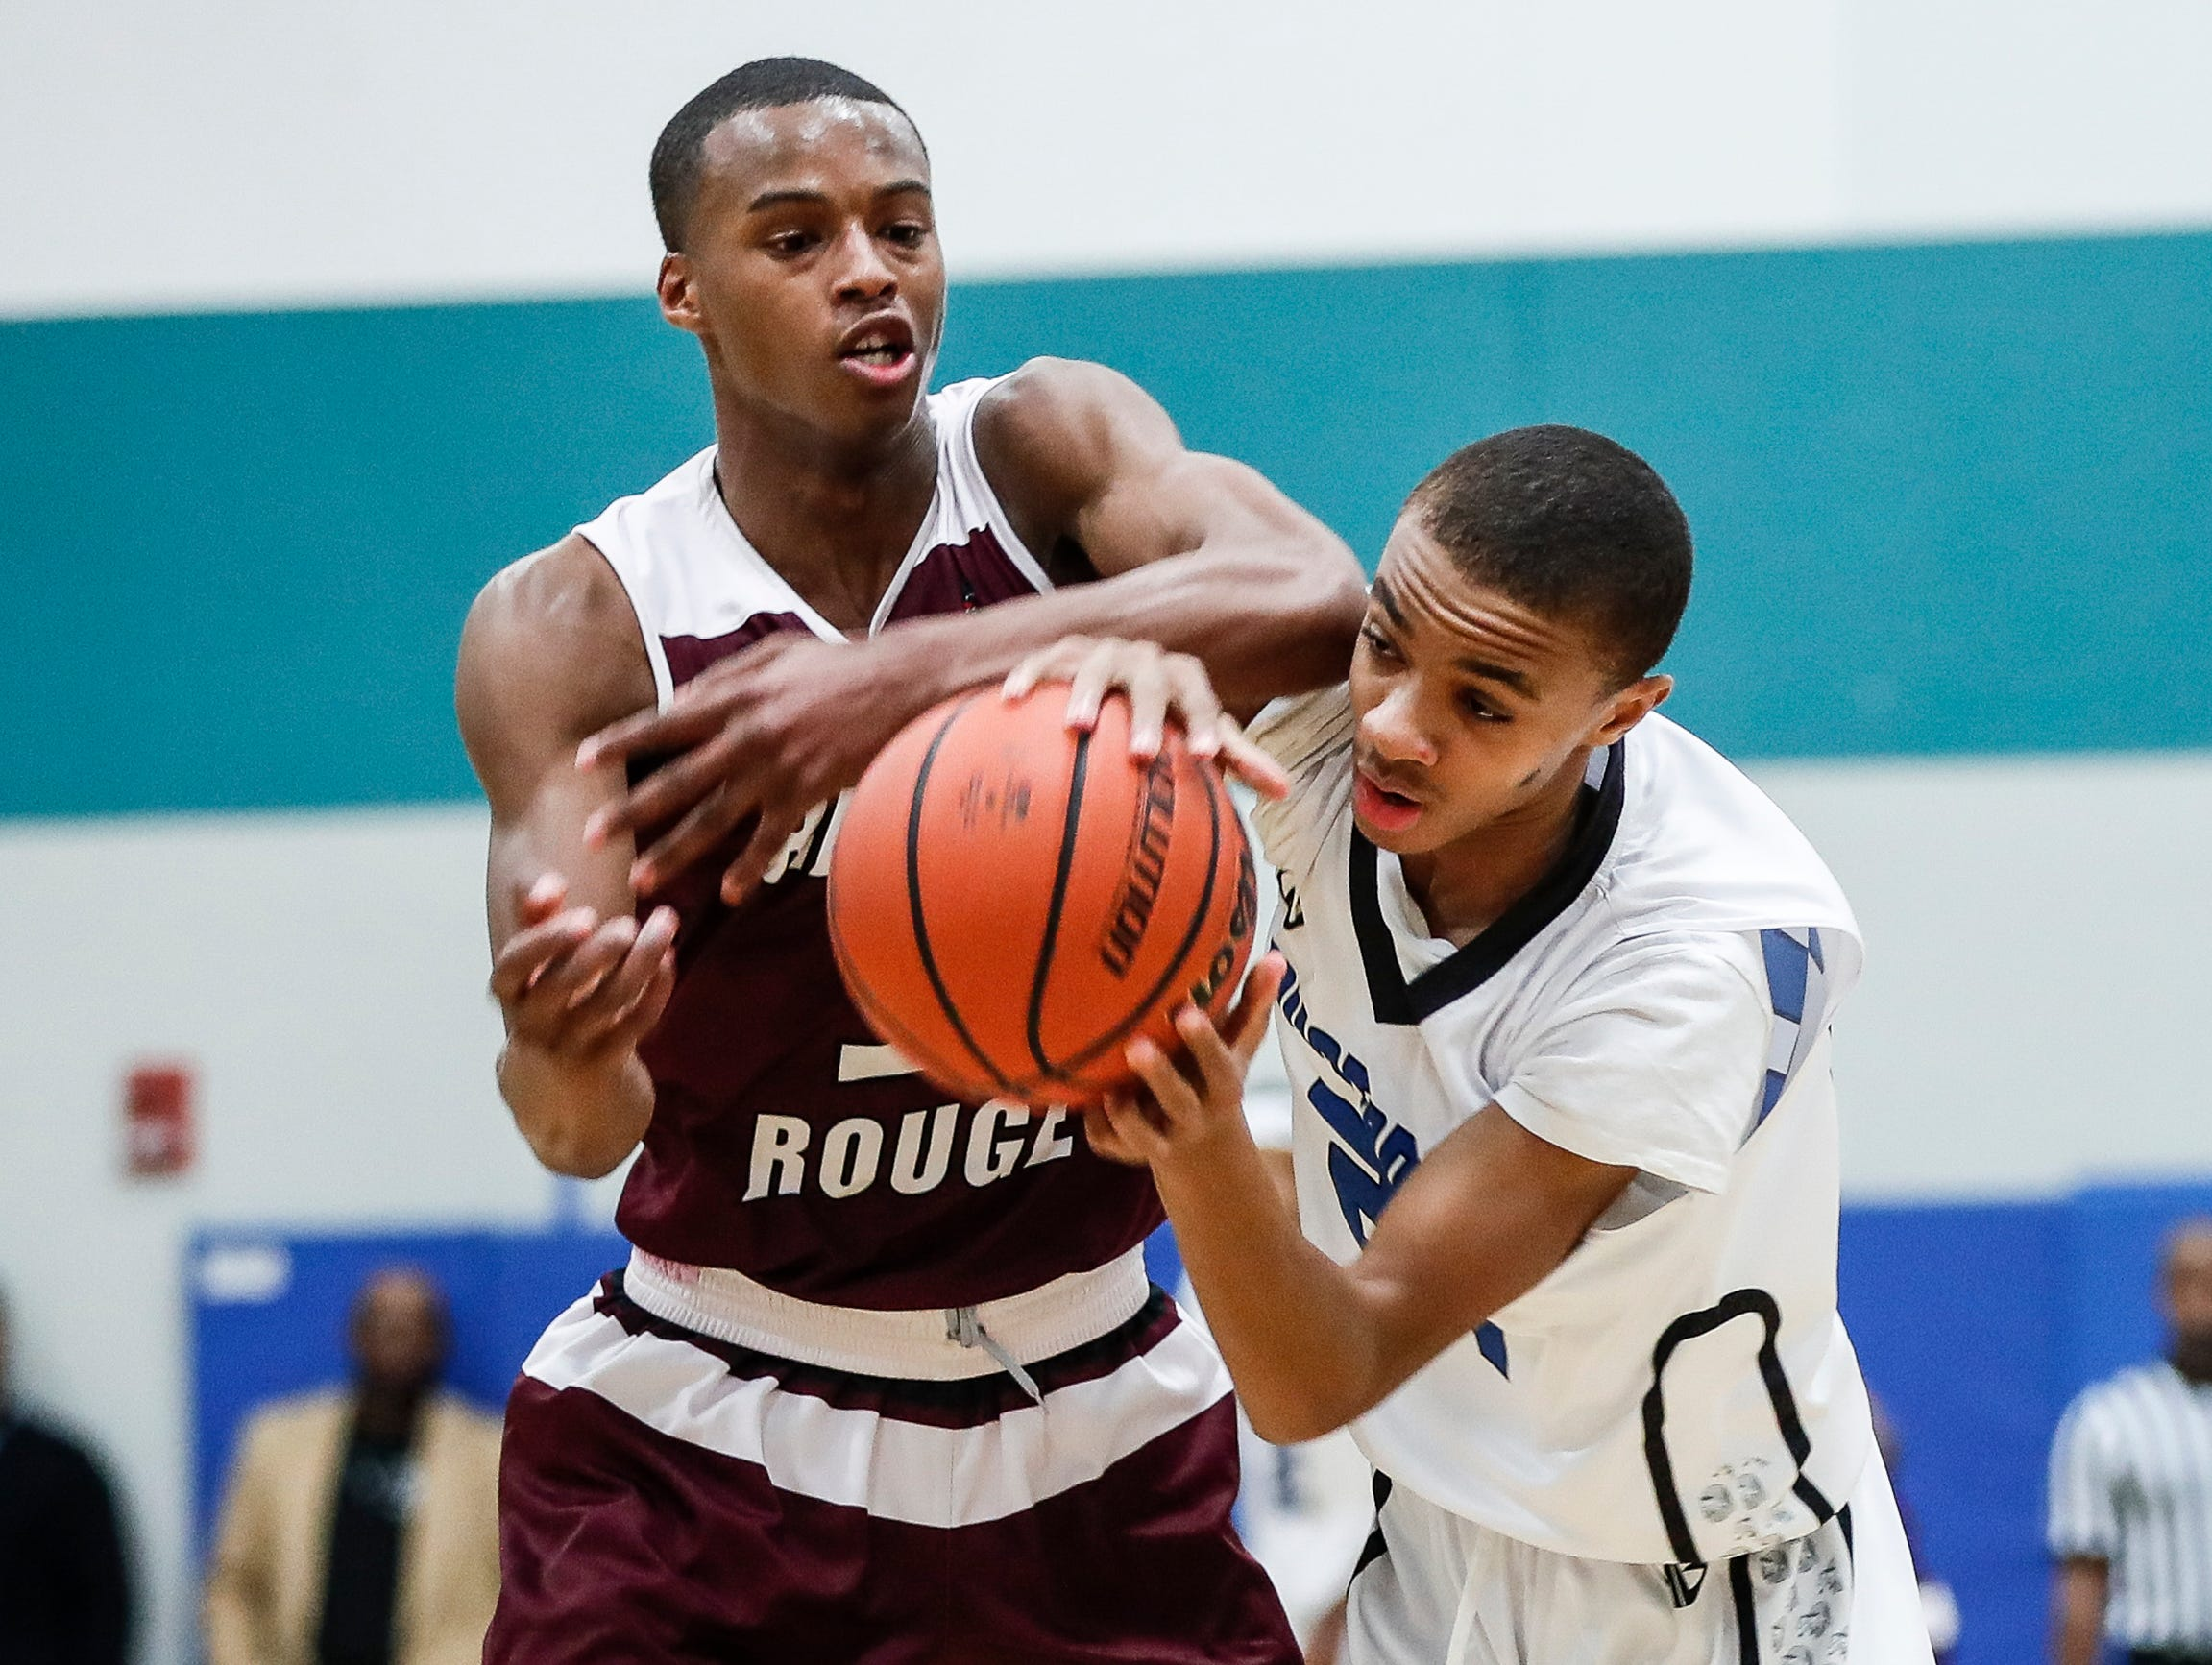 River Rouge's Micah Parrish (3) and Henry Ford Academy: School for Creative Studies' Omarion Burgess (21) battle for the ball during second half at the A. Alfred Taubman Center For Design Education in Detroit, Tuesday, Jan. 8, 2019.